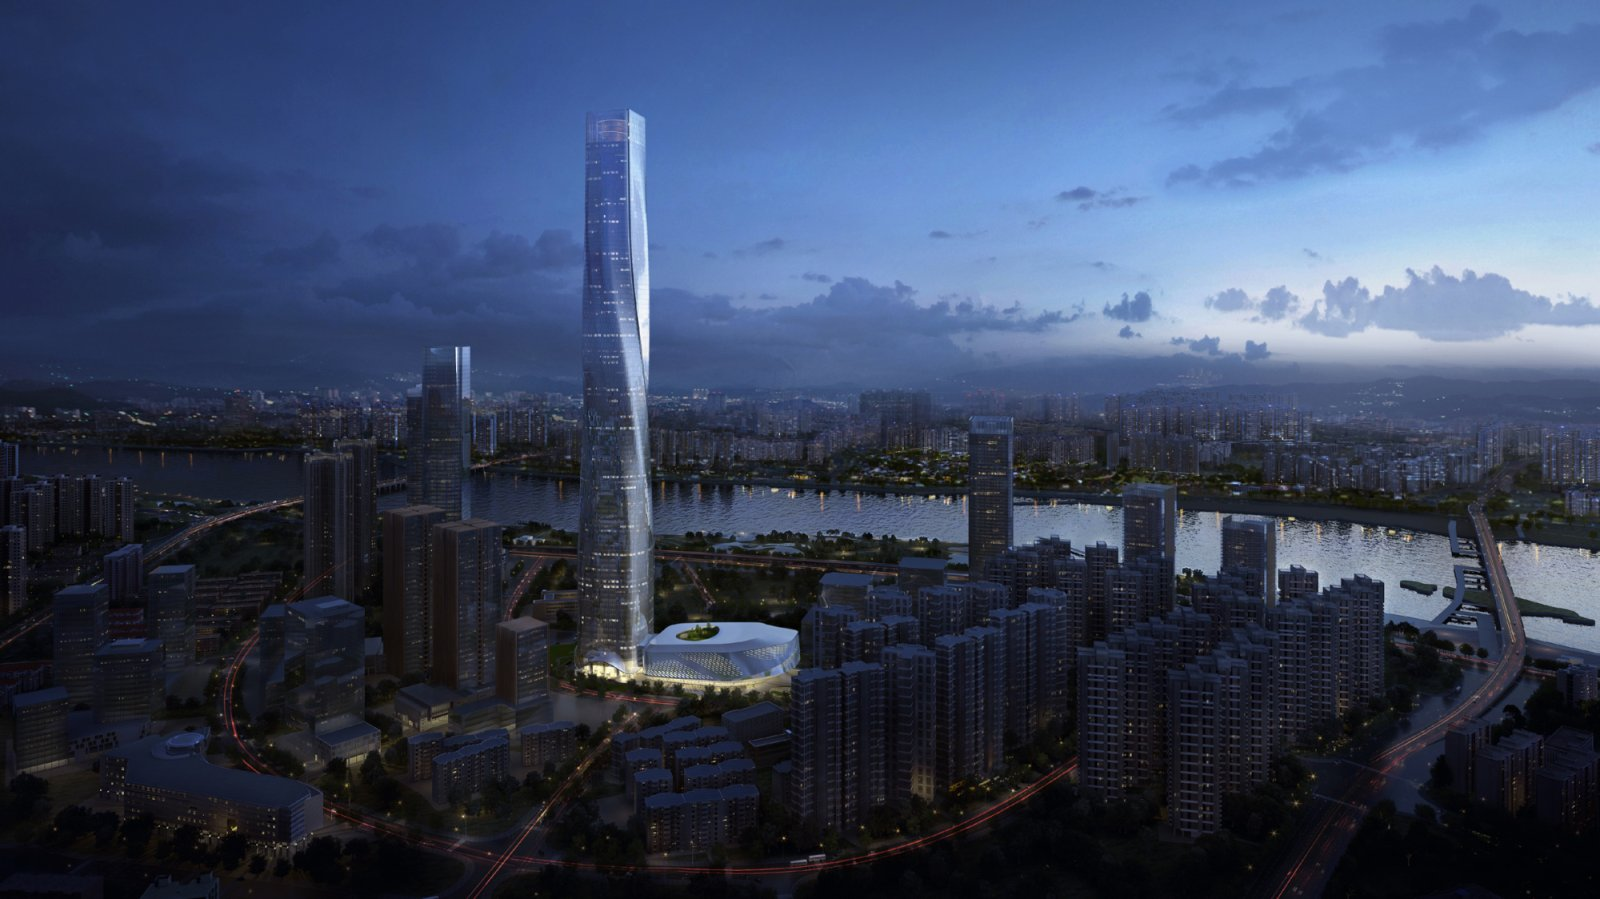 Shimao Fuzhou Tower